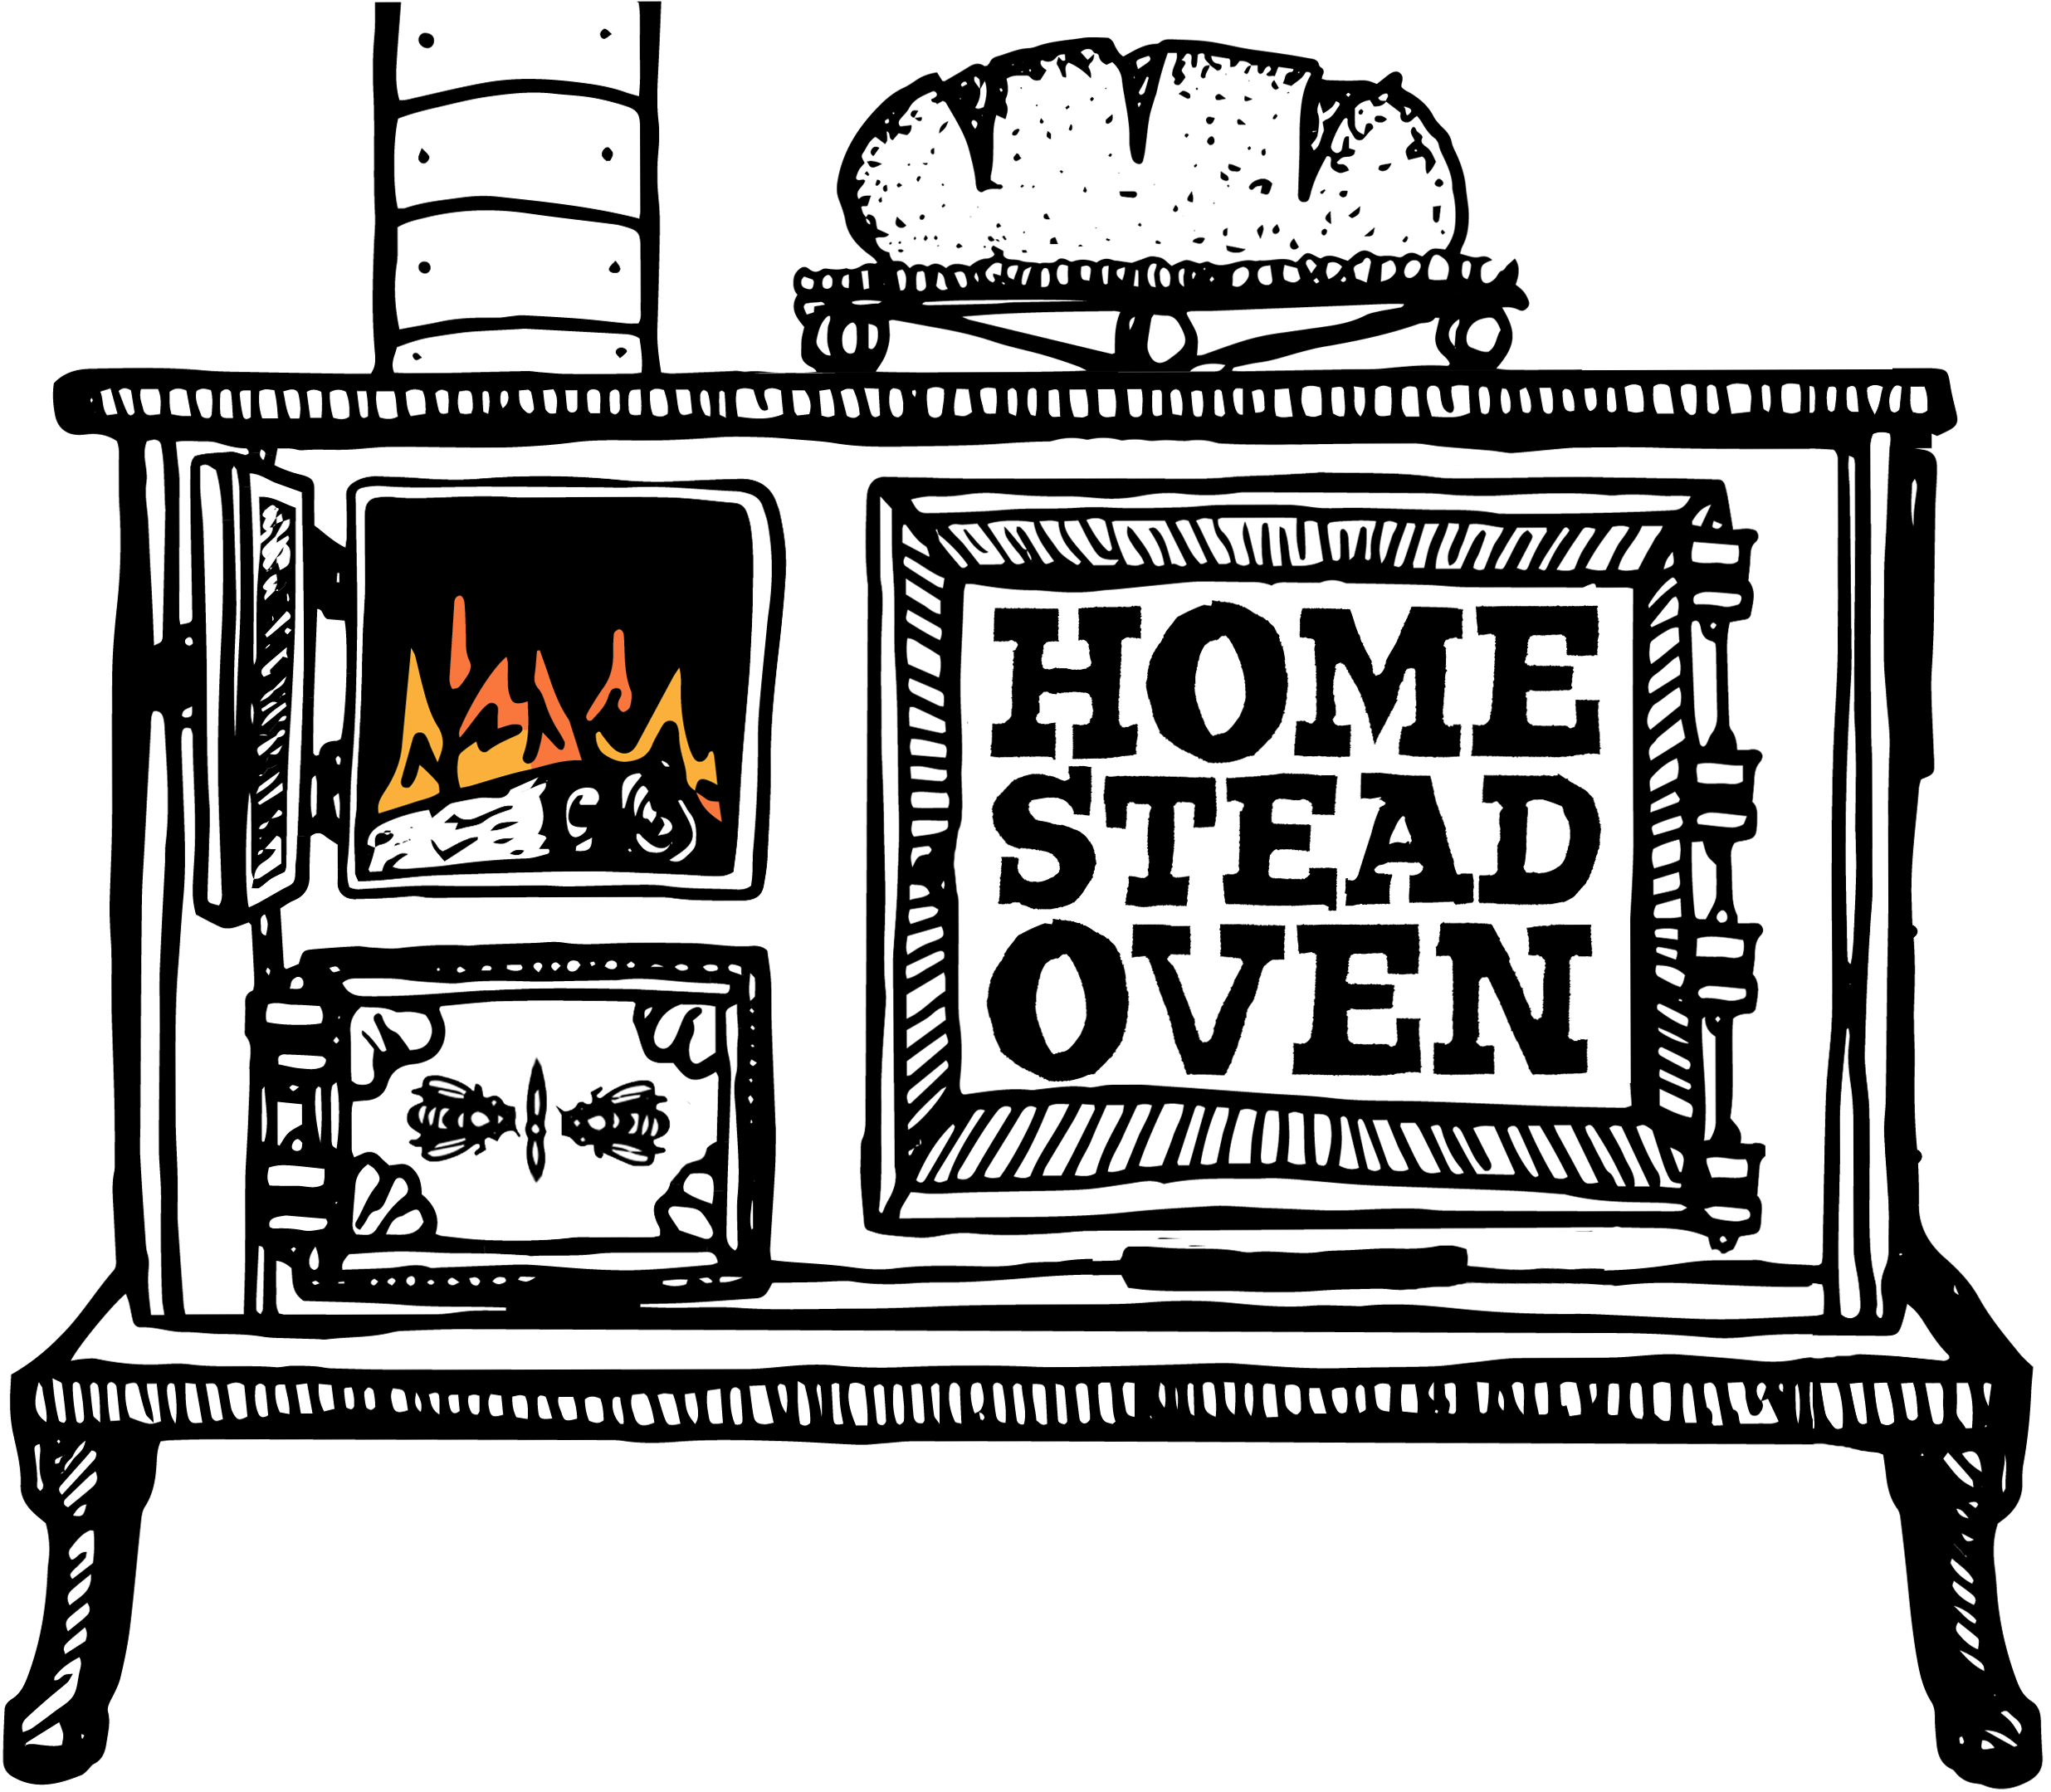 The Homestead Oven